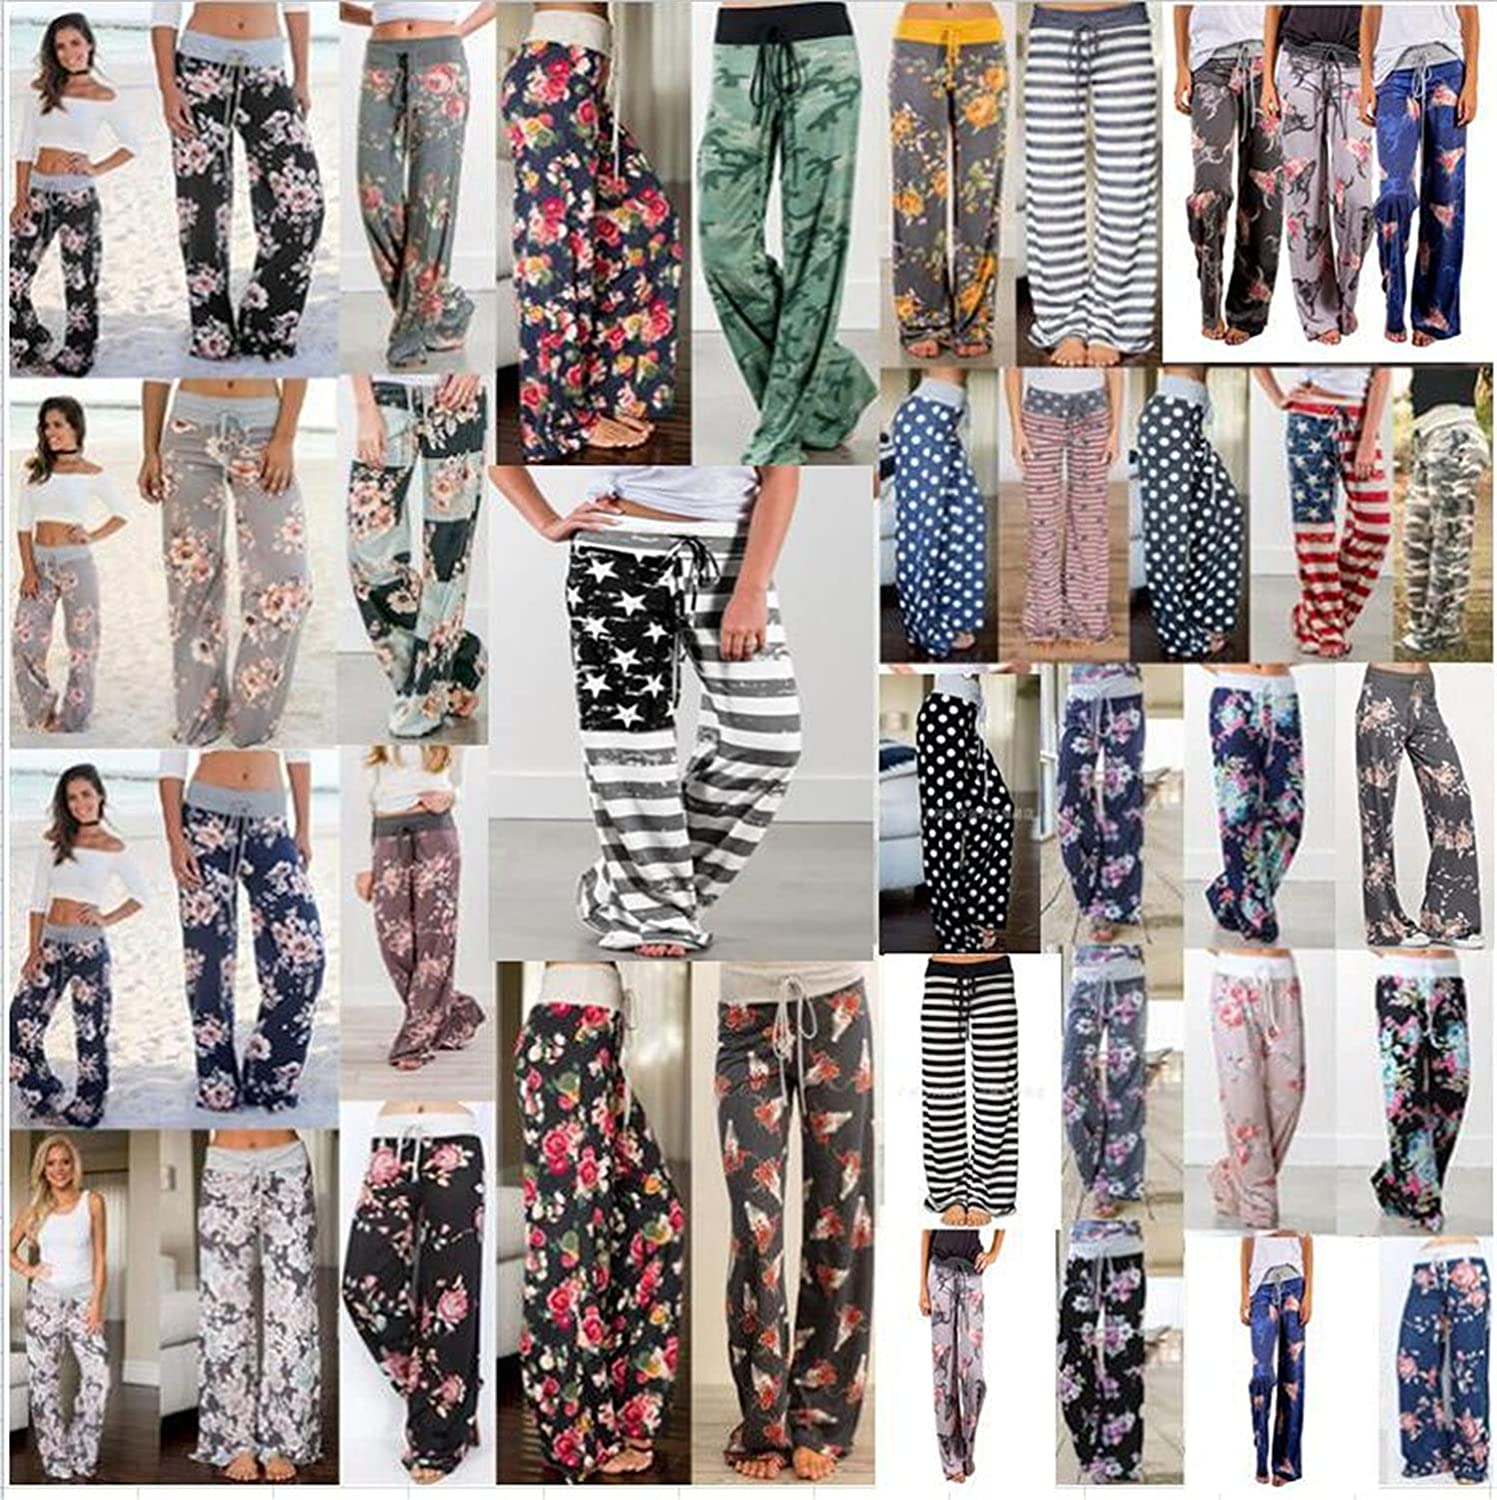 Women's Printed Wide-Leg Pants Comfy Stretch Floral Print Drawstring Lounge Trousers Casual Stretchy Casualpants (XX-Large,Grey1)